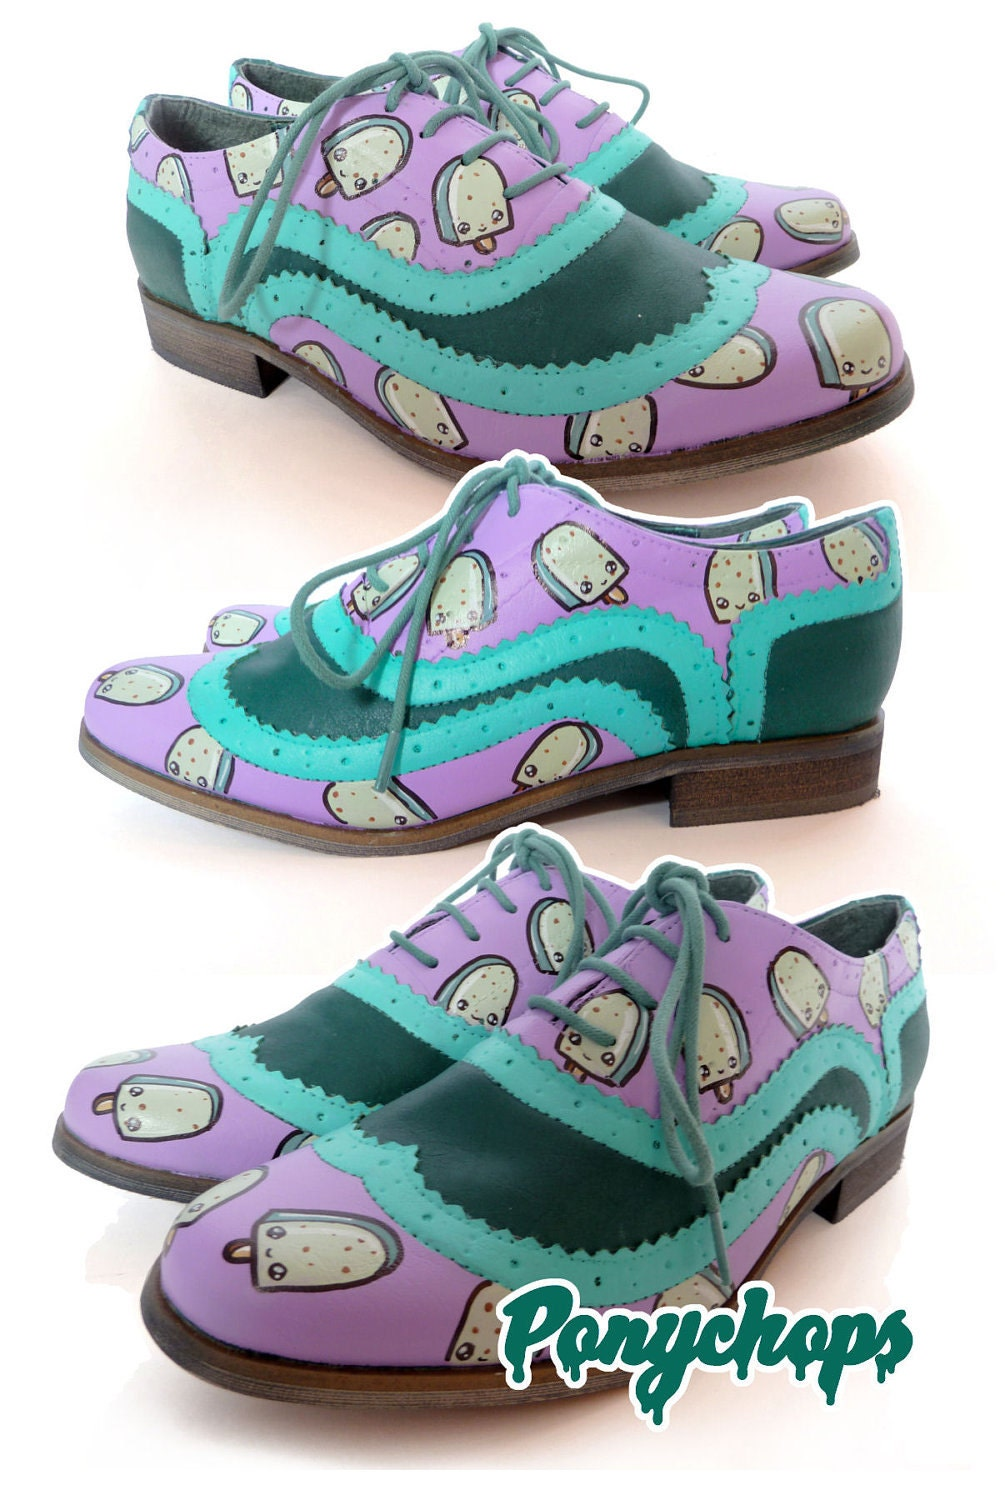 Mint Choc Chip Kawaii Brogues - Sz UK 4, US 6.5, Eur 37